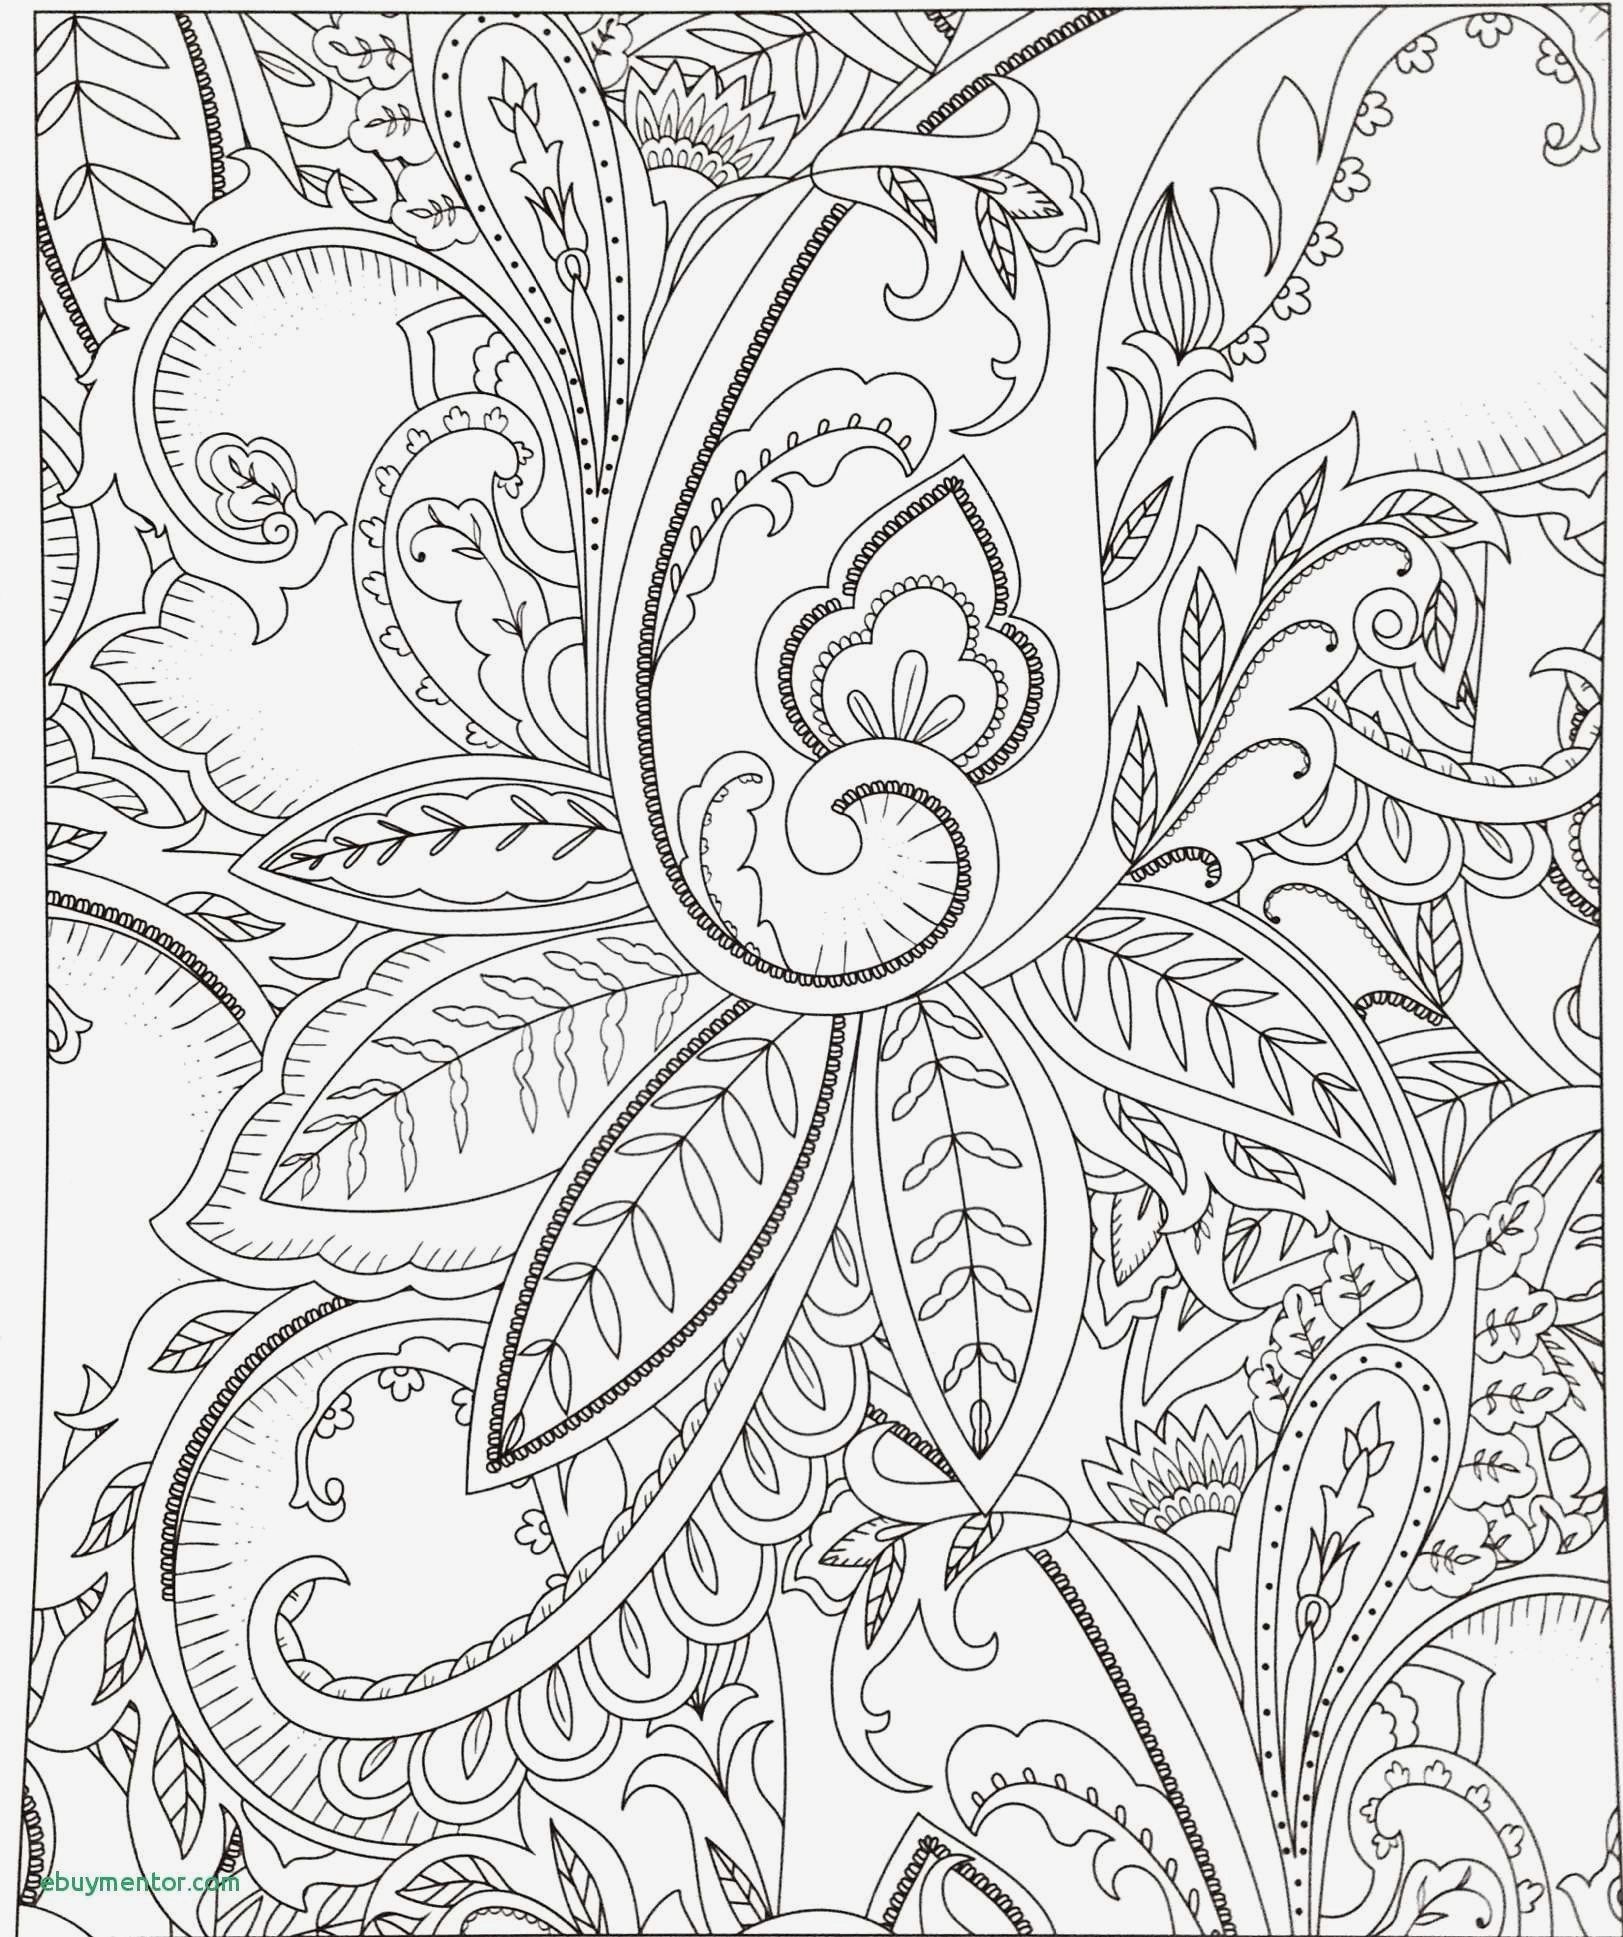 mandala art coloring pages Download-Goat Coloring Pages Free Printable Coloring Pages Mandala Christmas Fresh Cool Coloring Printables 0d 19-s